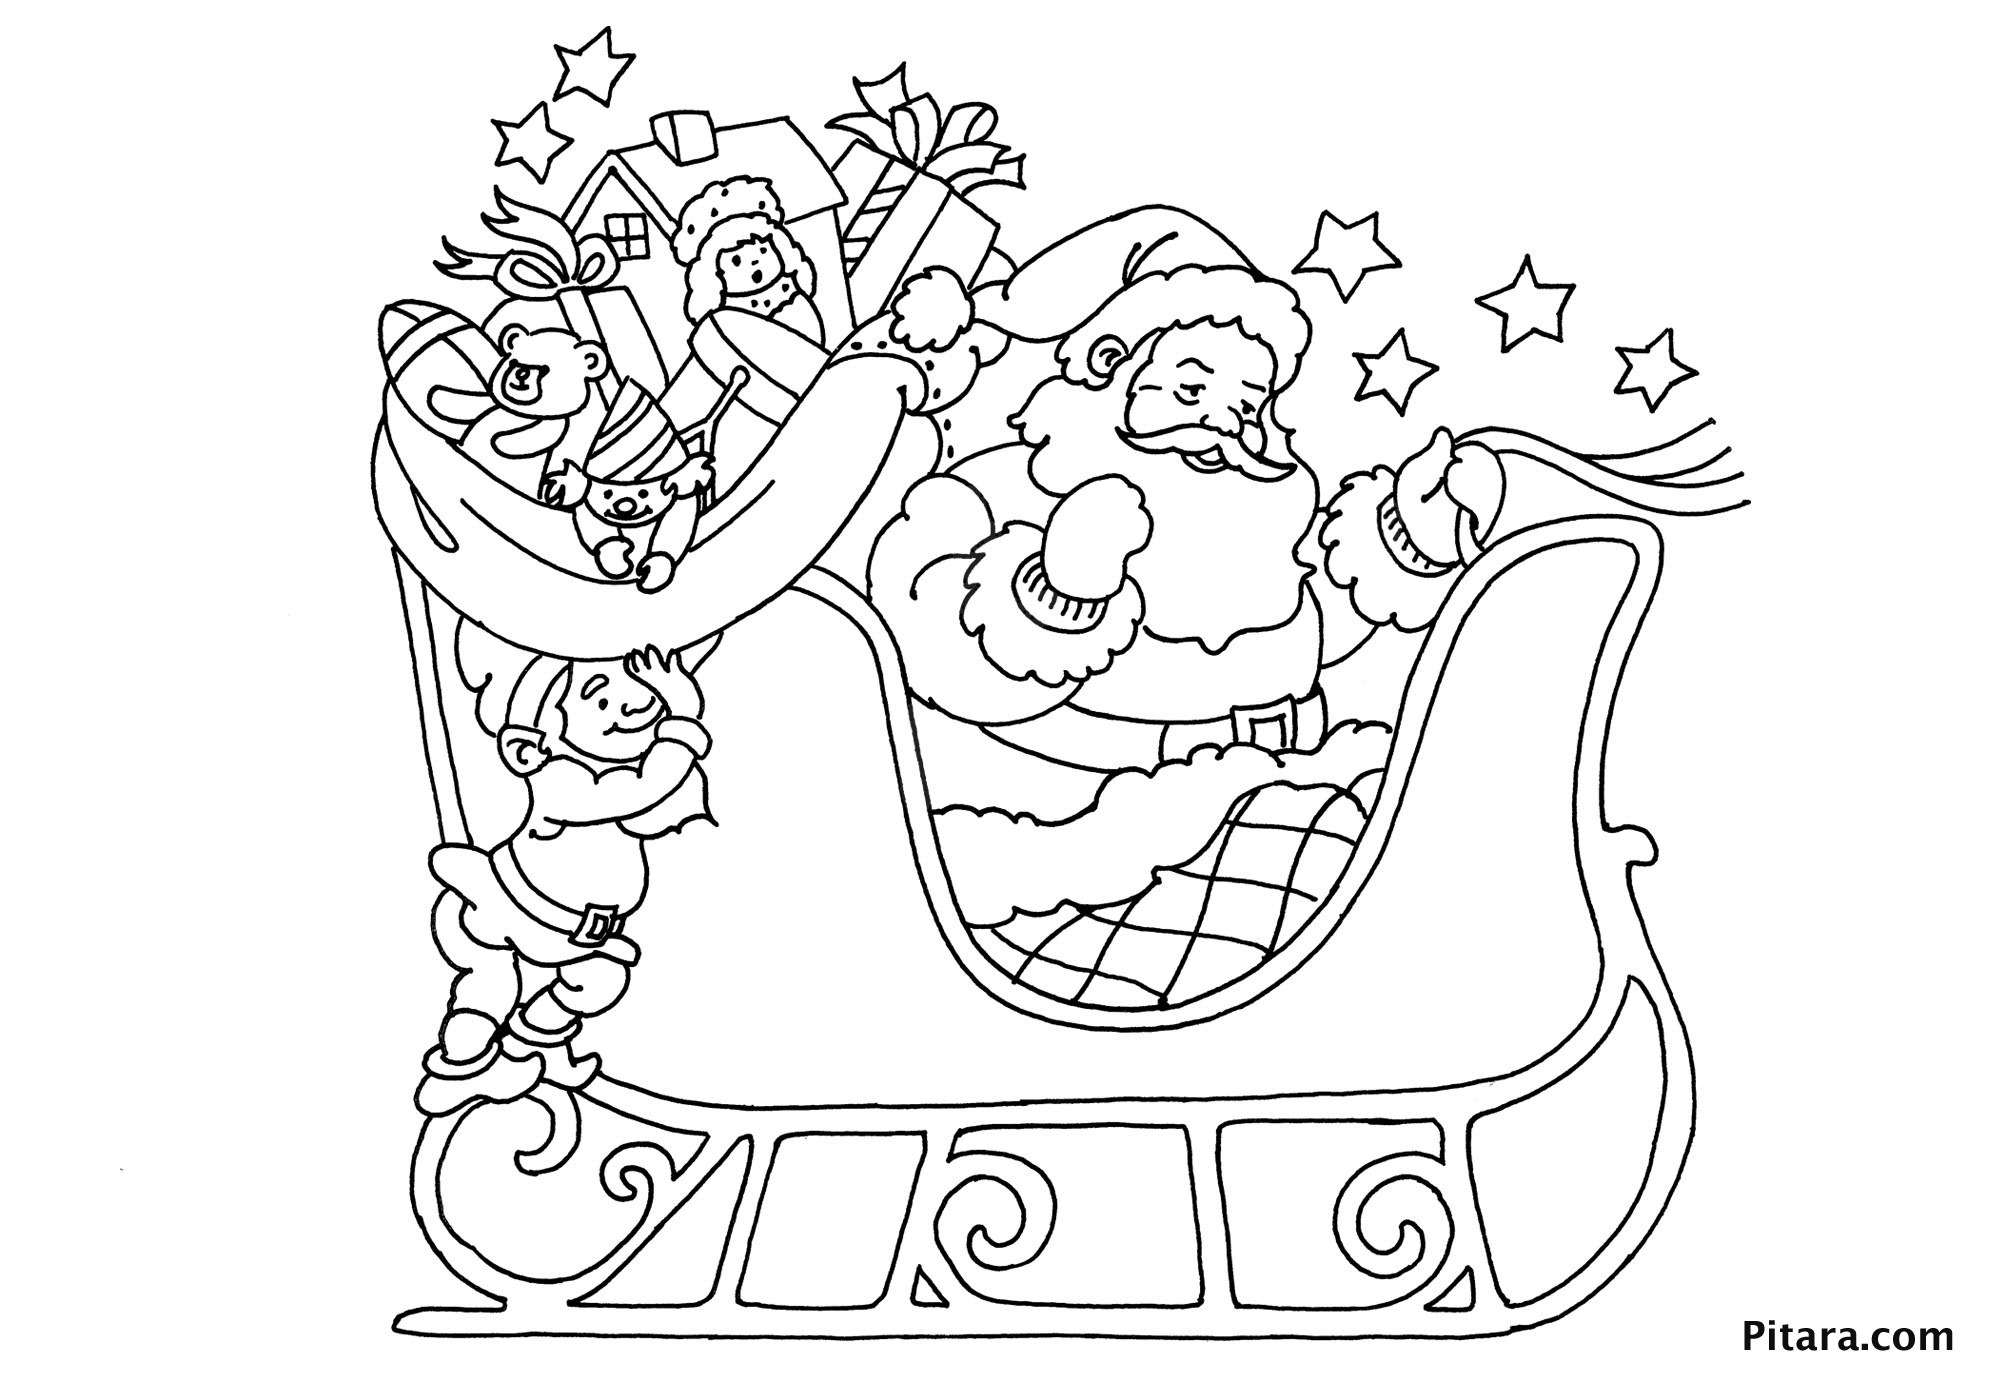 - Christmas Coloring Pages For Kids Pitara Kids' Network